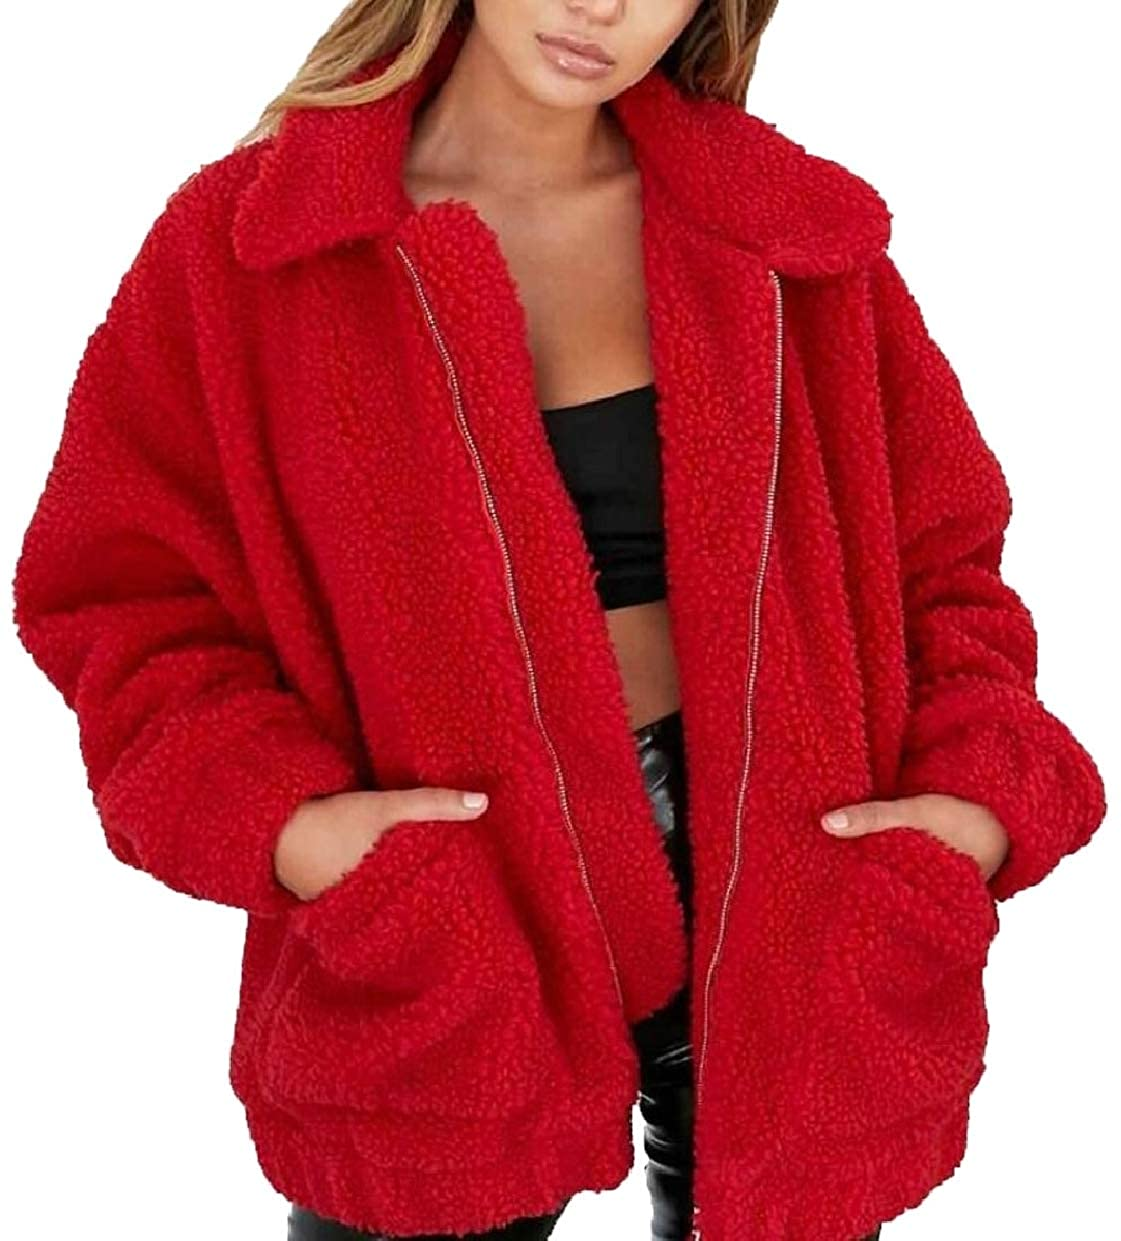 xiaohuoban Women's Long Sleeve Zipper Dual Pocket Faux Fur Coat Jacket